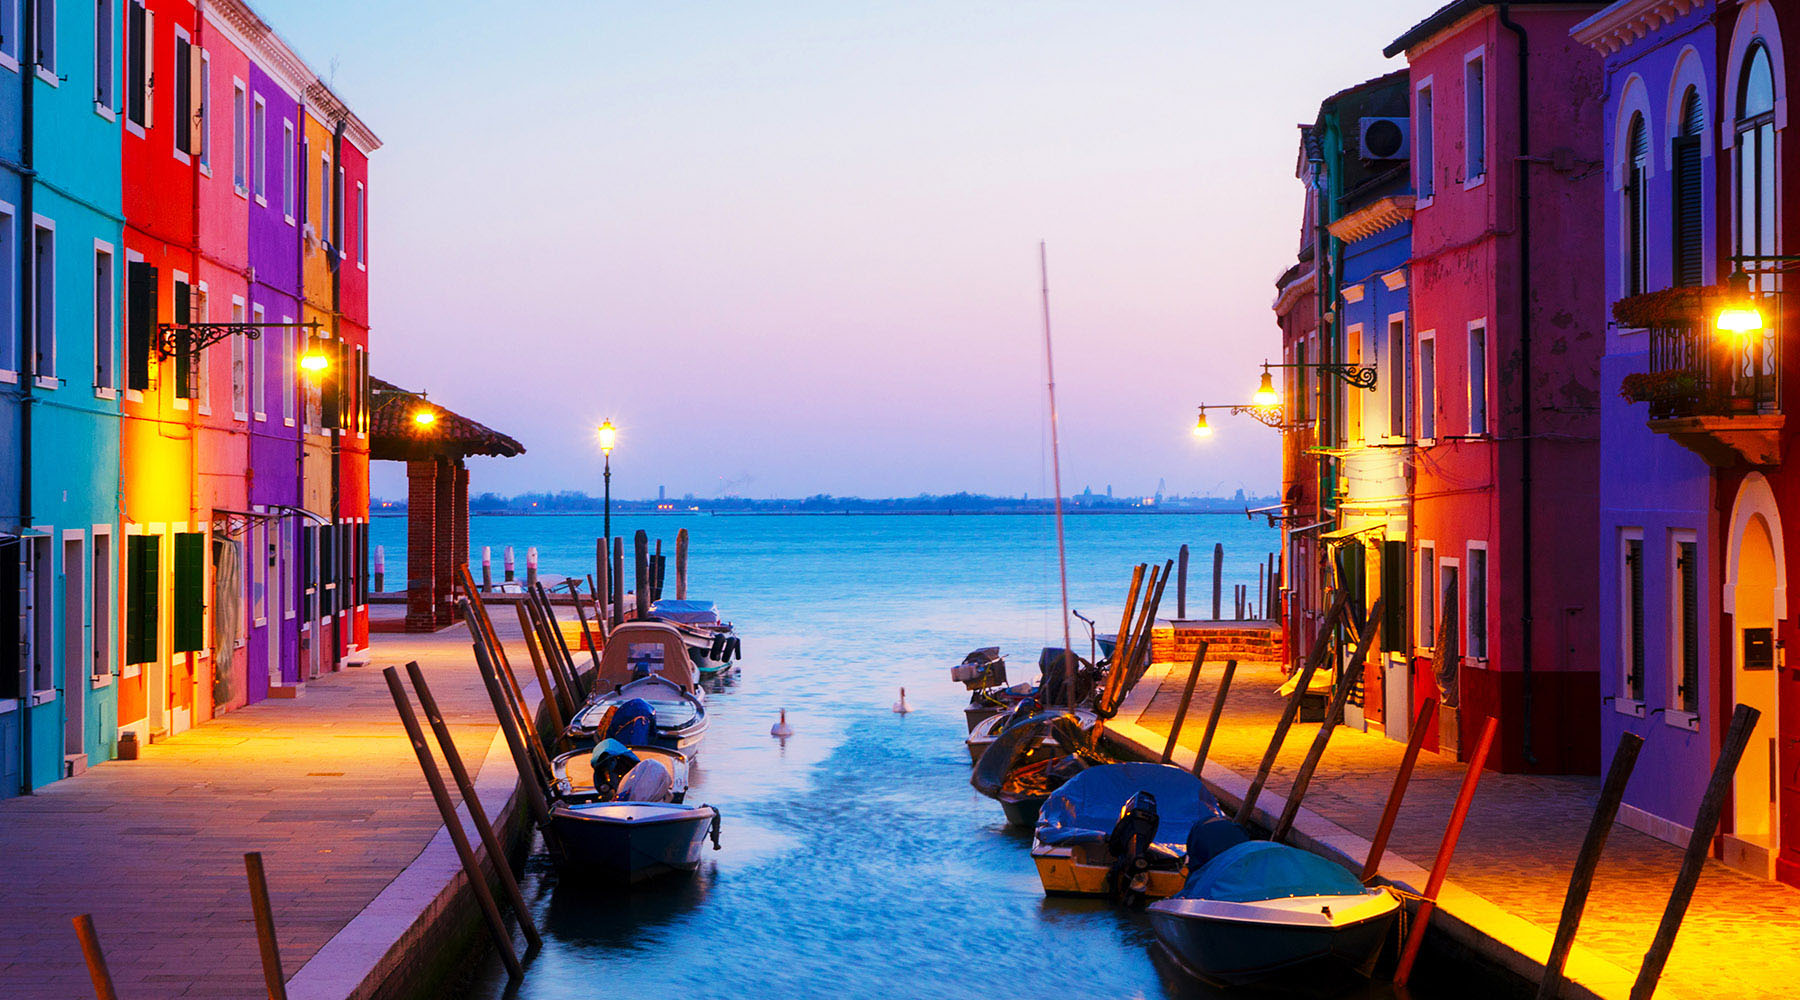 8-Night Italy Intensive & 3-Night Post Venice Stay